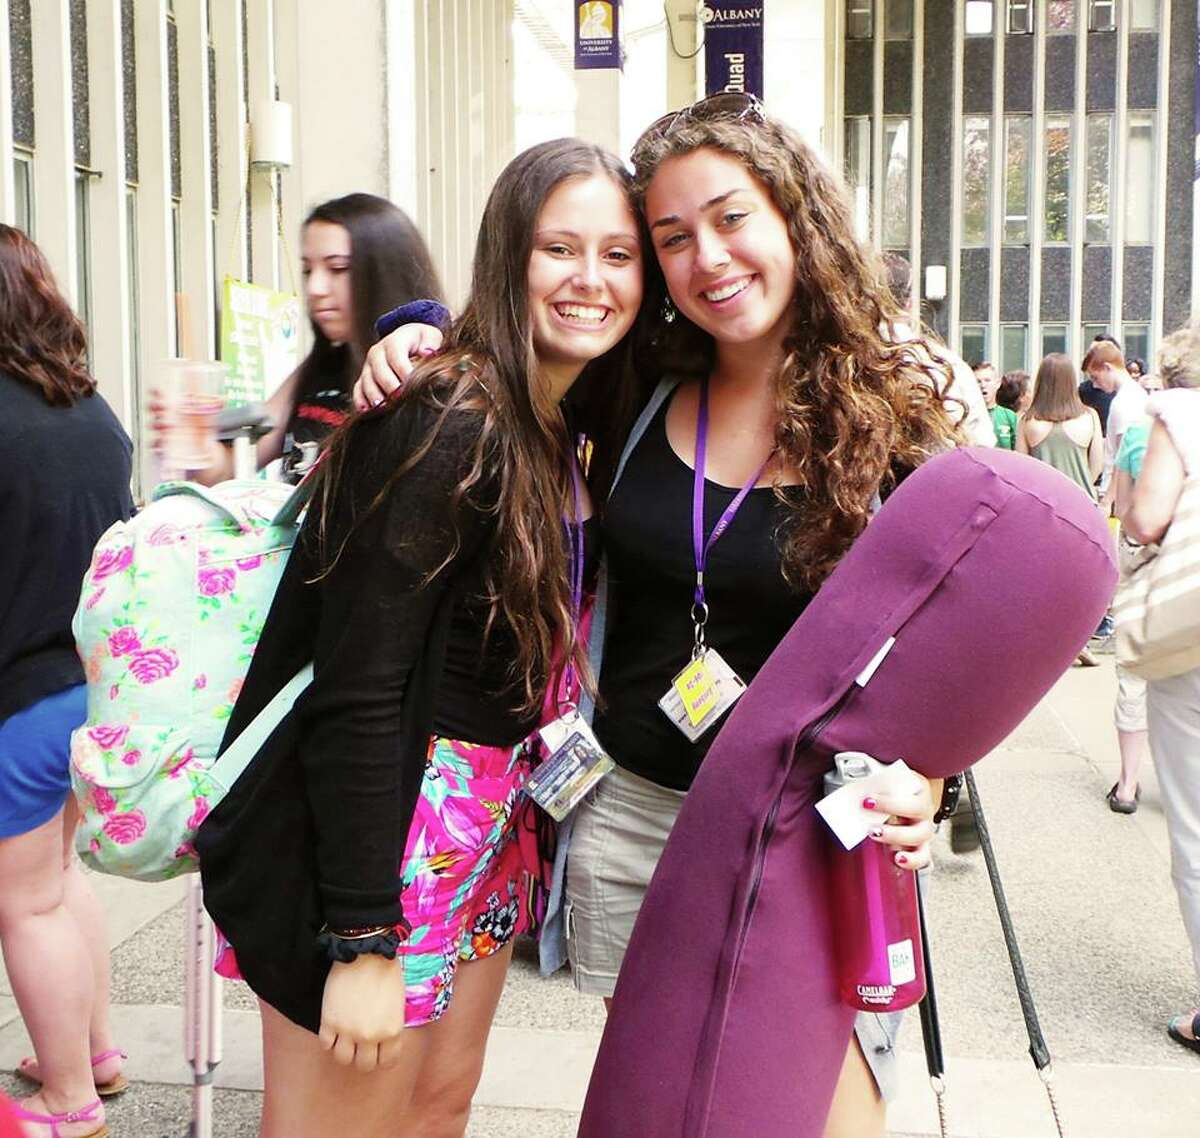 Were you Seen at the summer orientation sessions for new students held at UAlbany from July 7 to July 11, 2014?